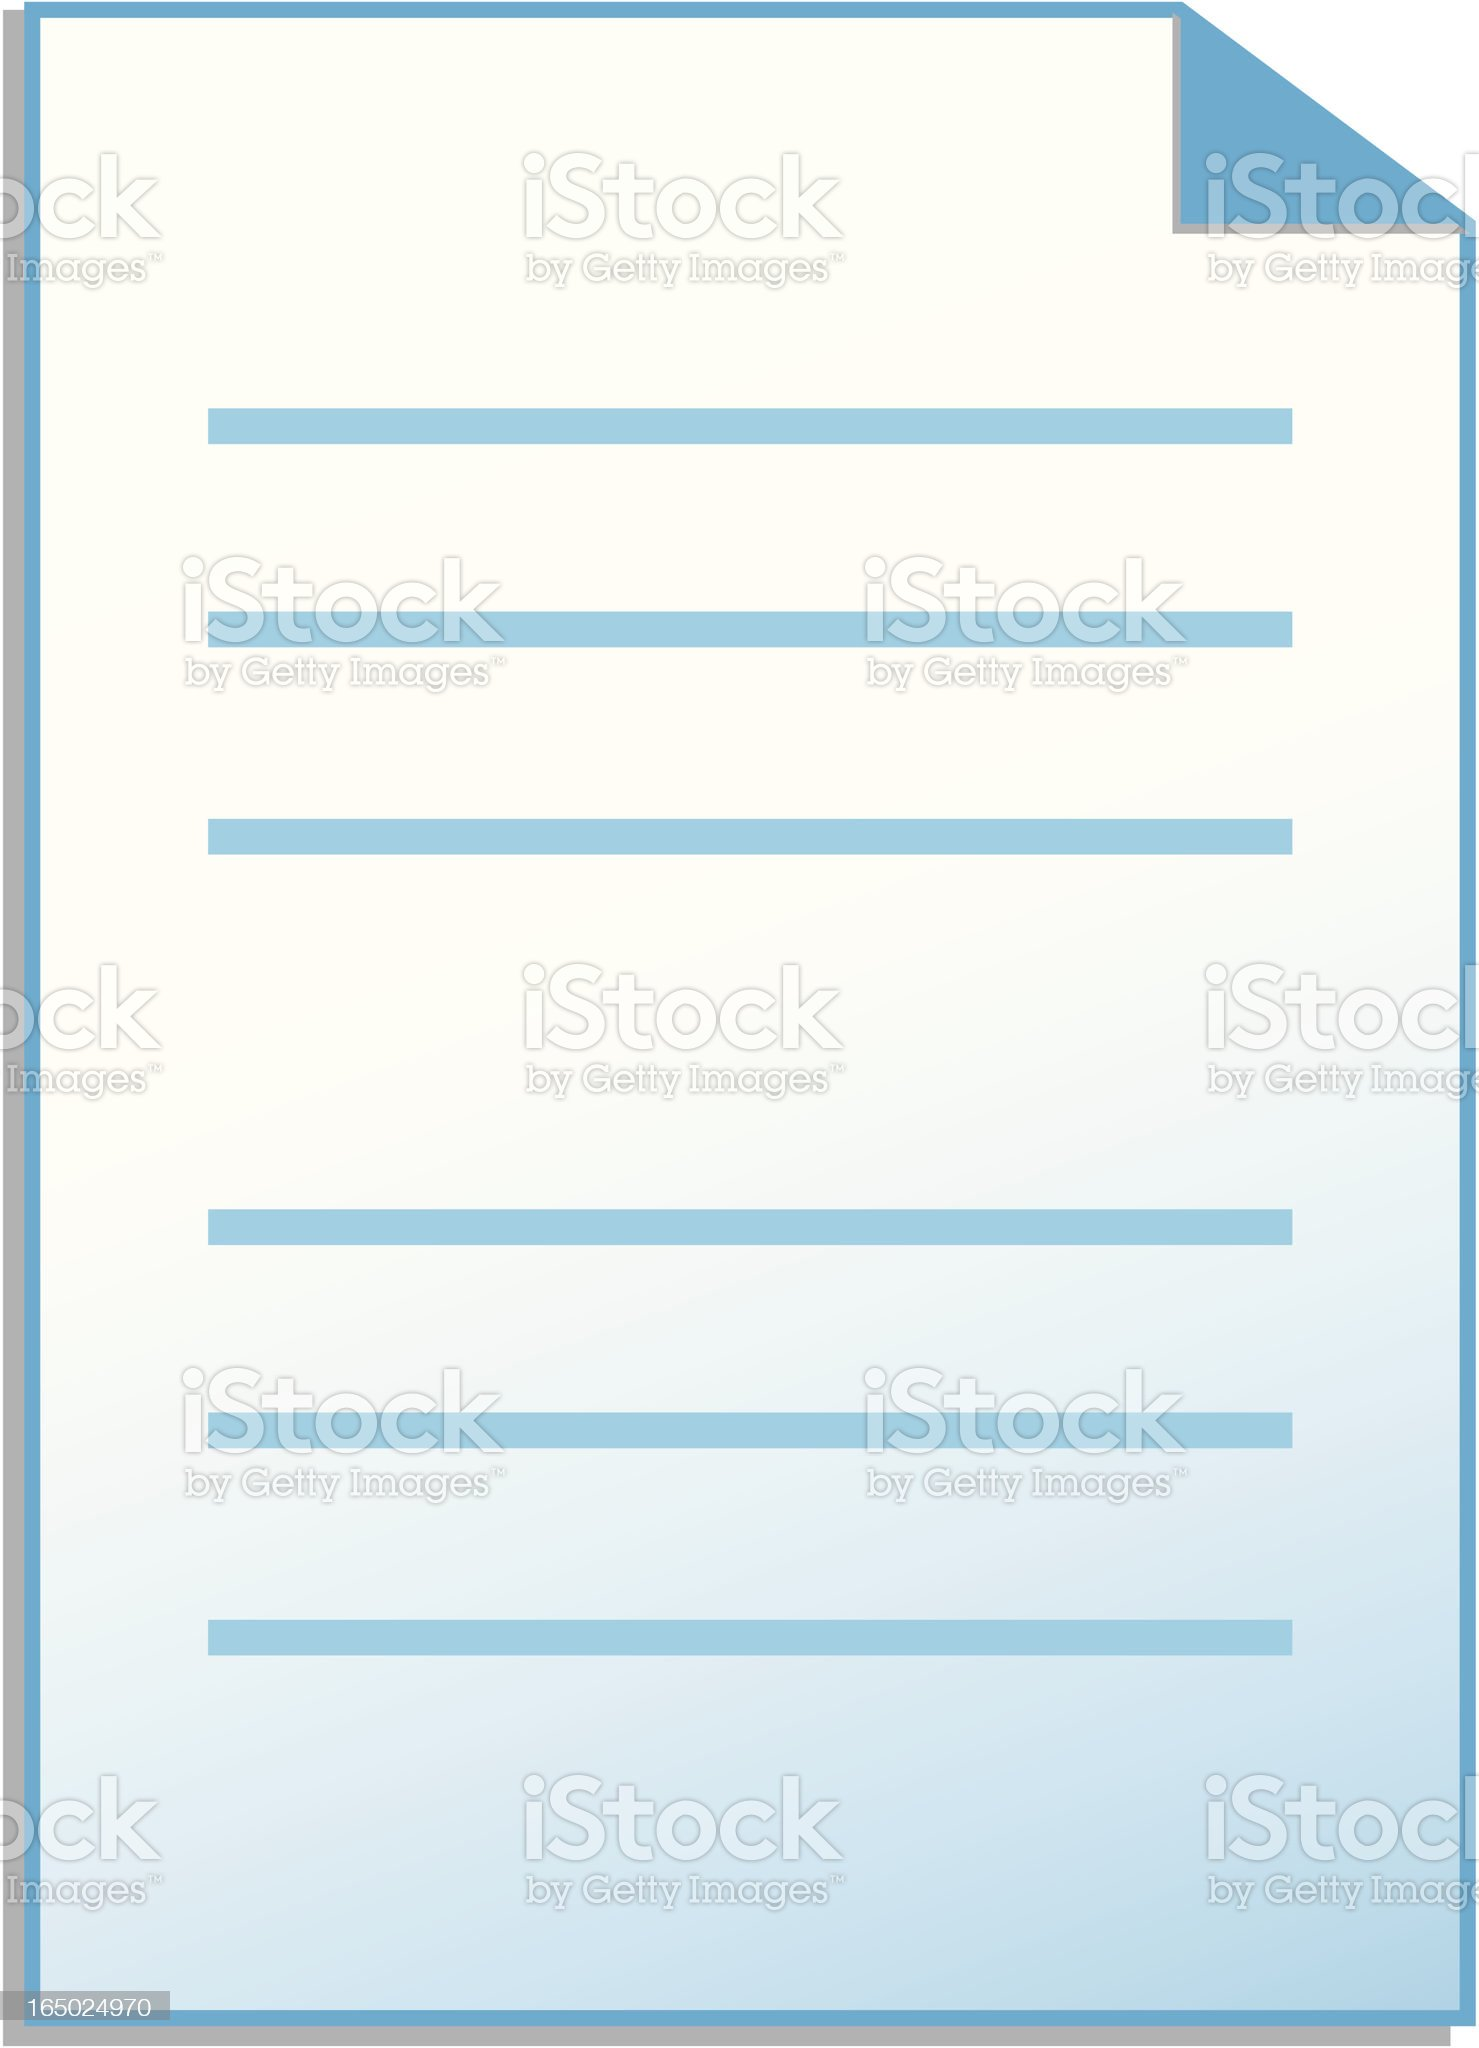 document royalty-free stock vector art